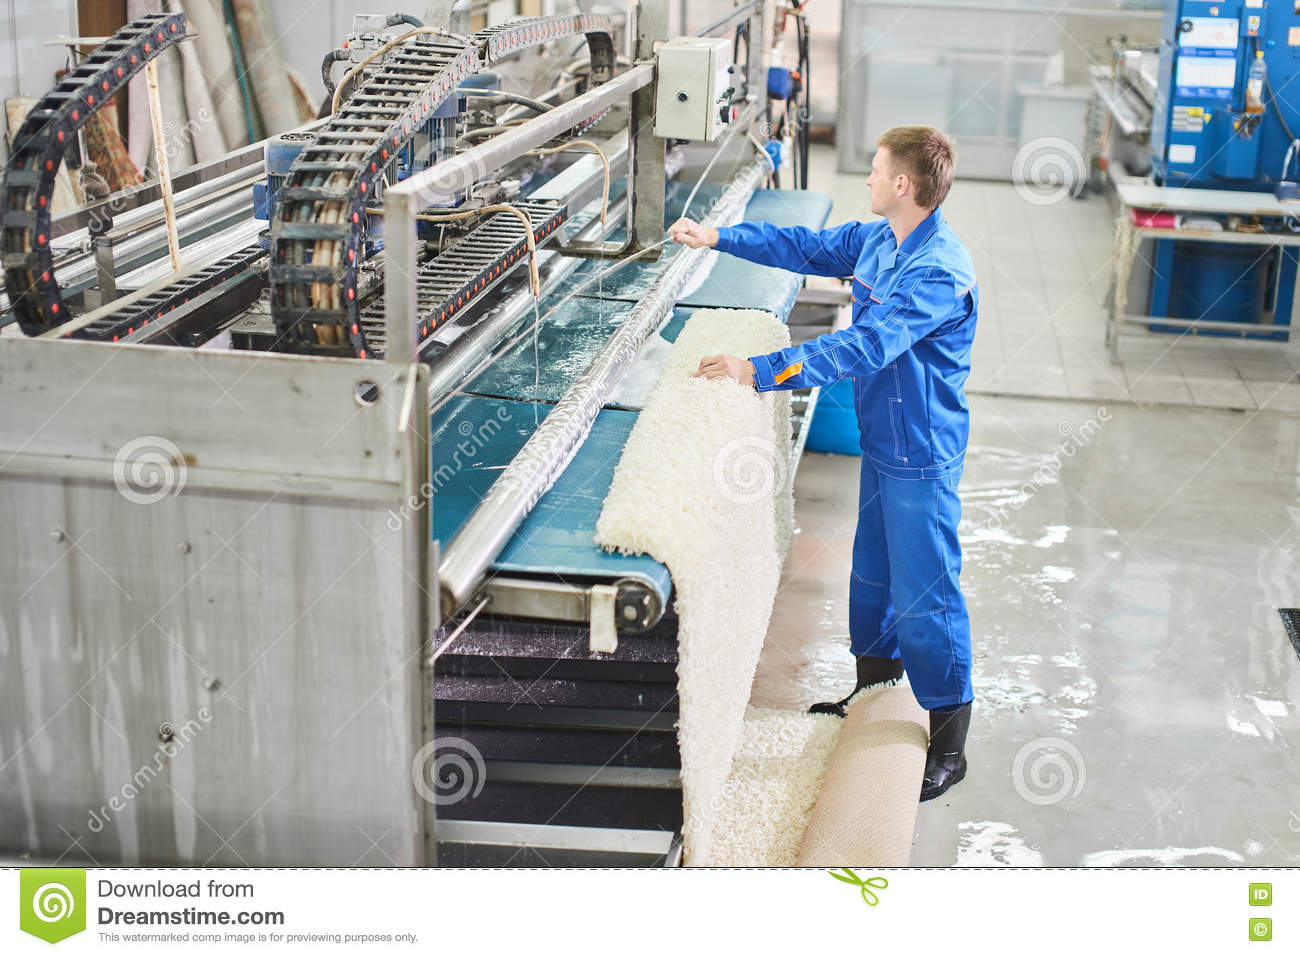 Laundry Worker In The Process Of Working On Automatic